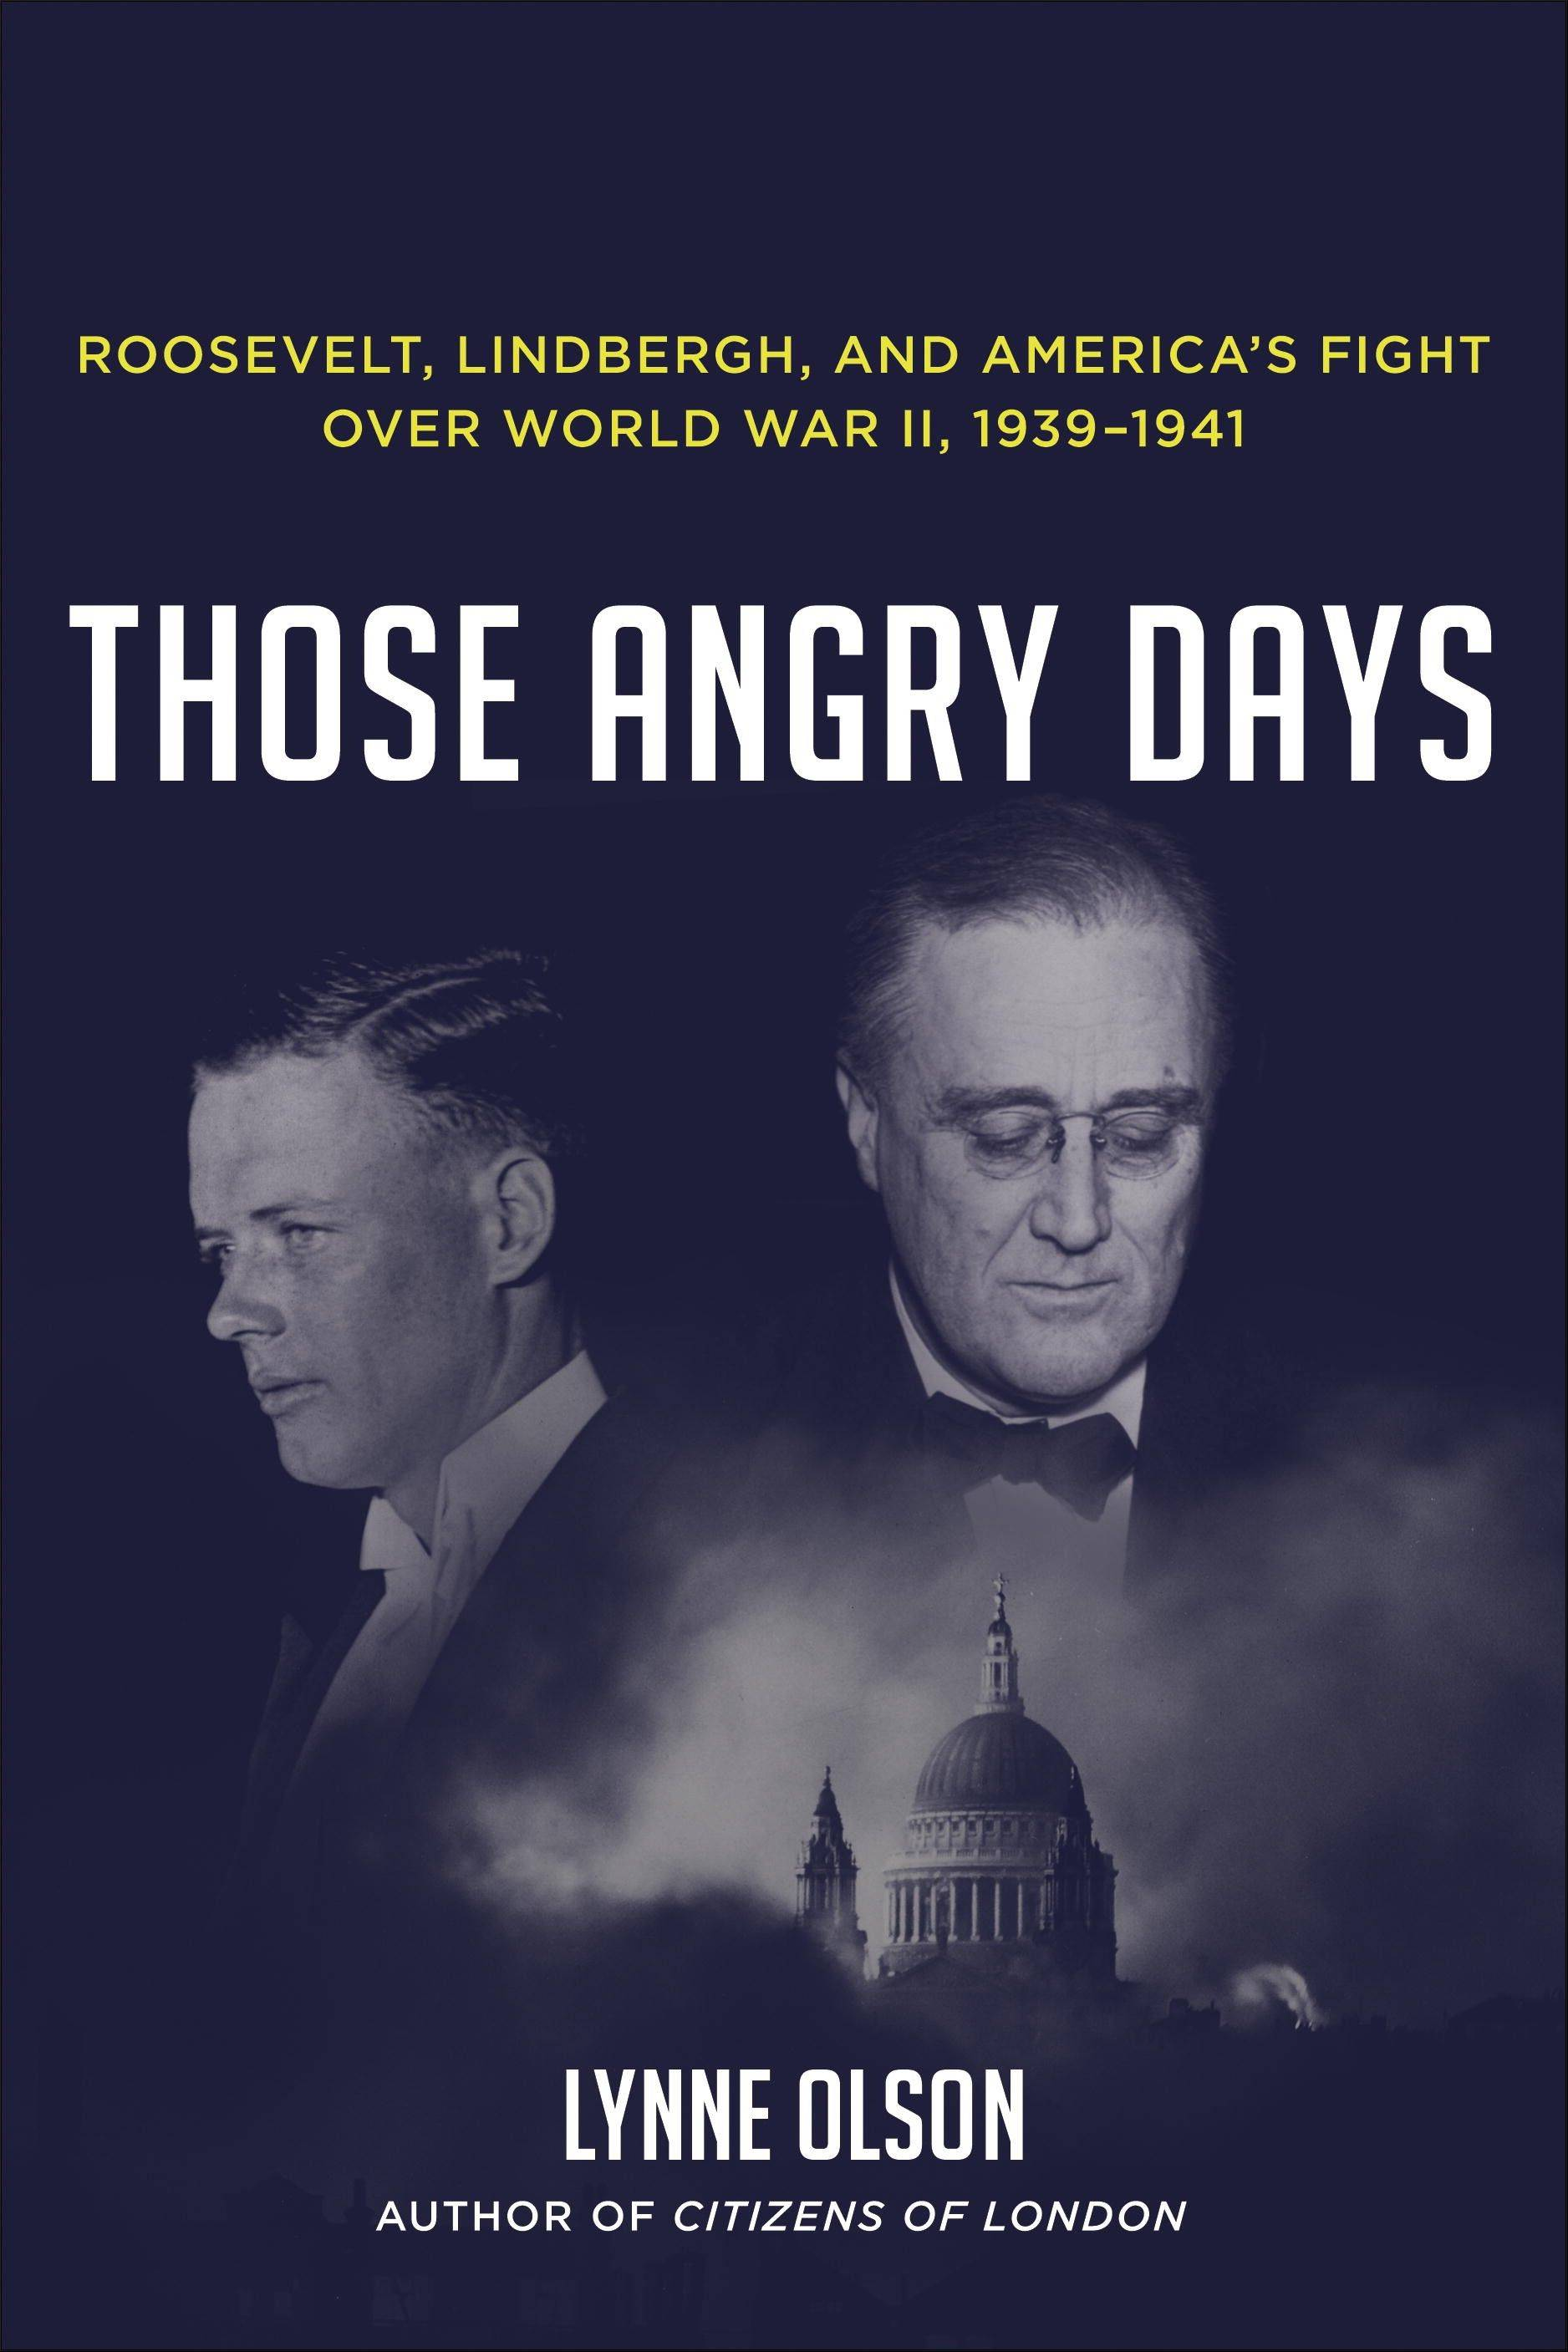 """Those Angry Days: Roosevelt, Lindbergh, and America's Fight Over World War II, 1939-1941"" by Lynne Olson"